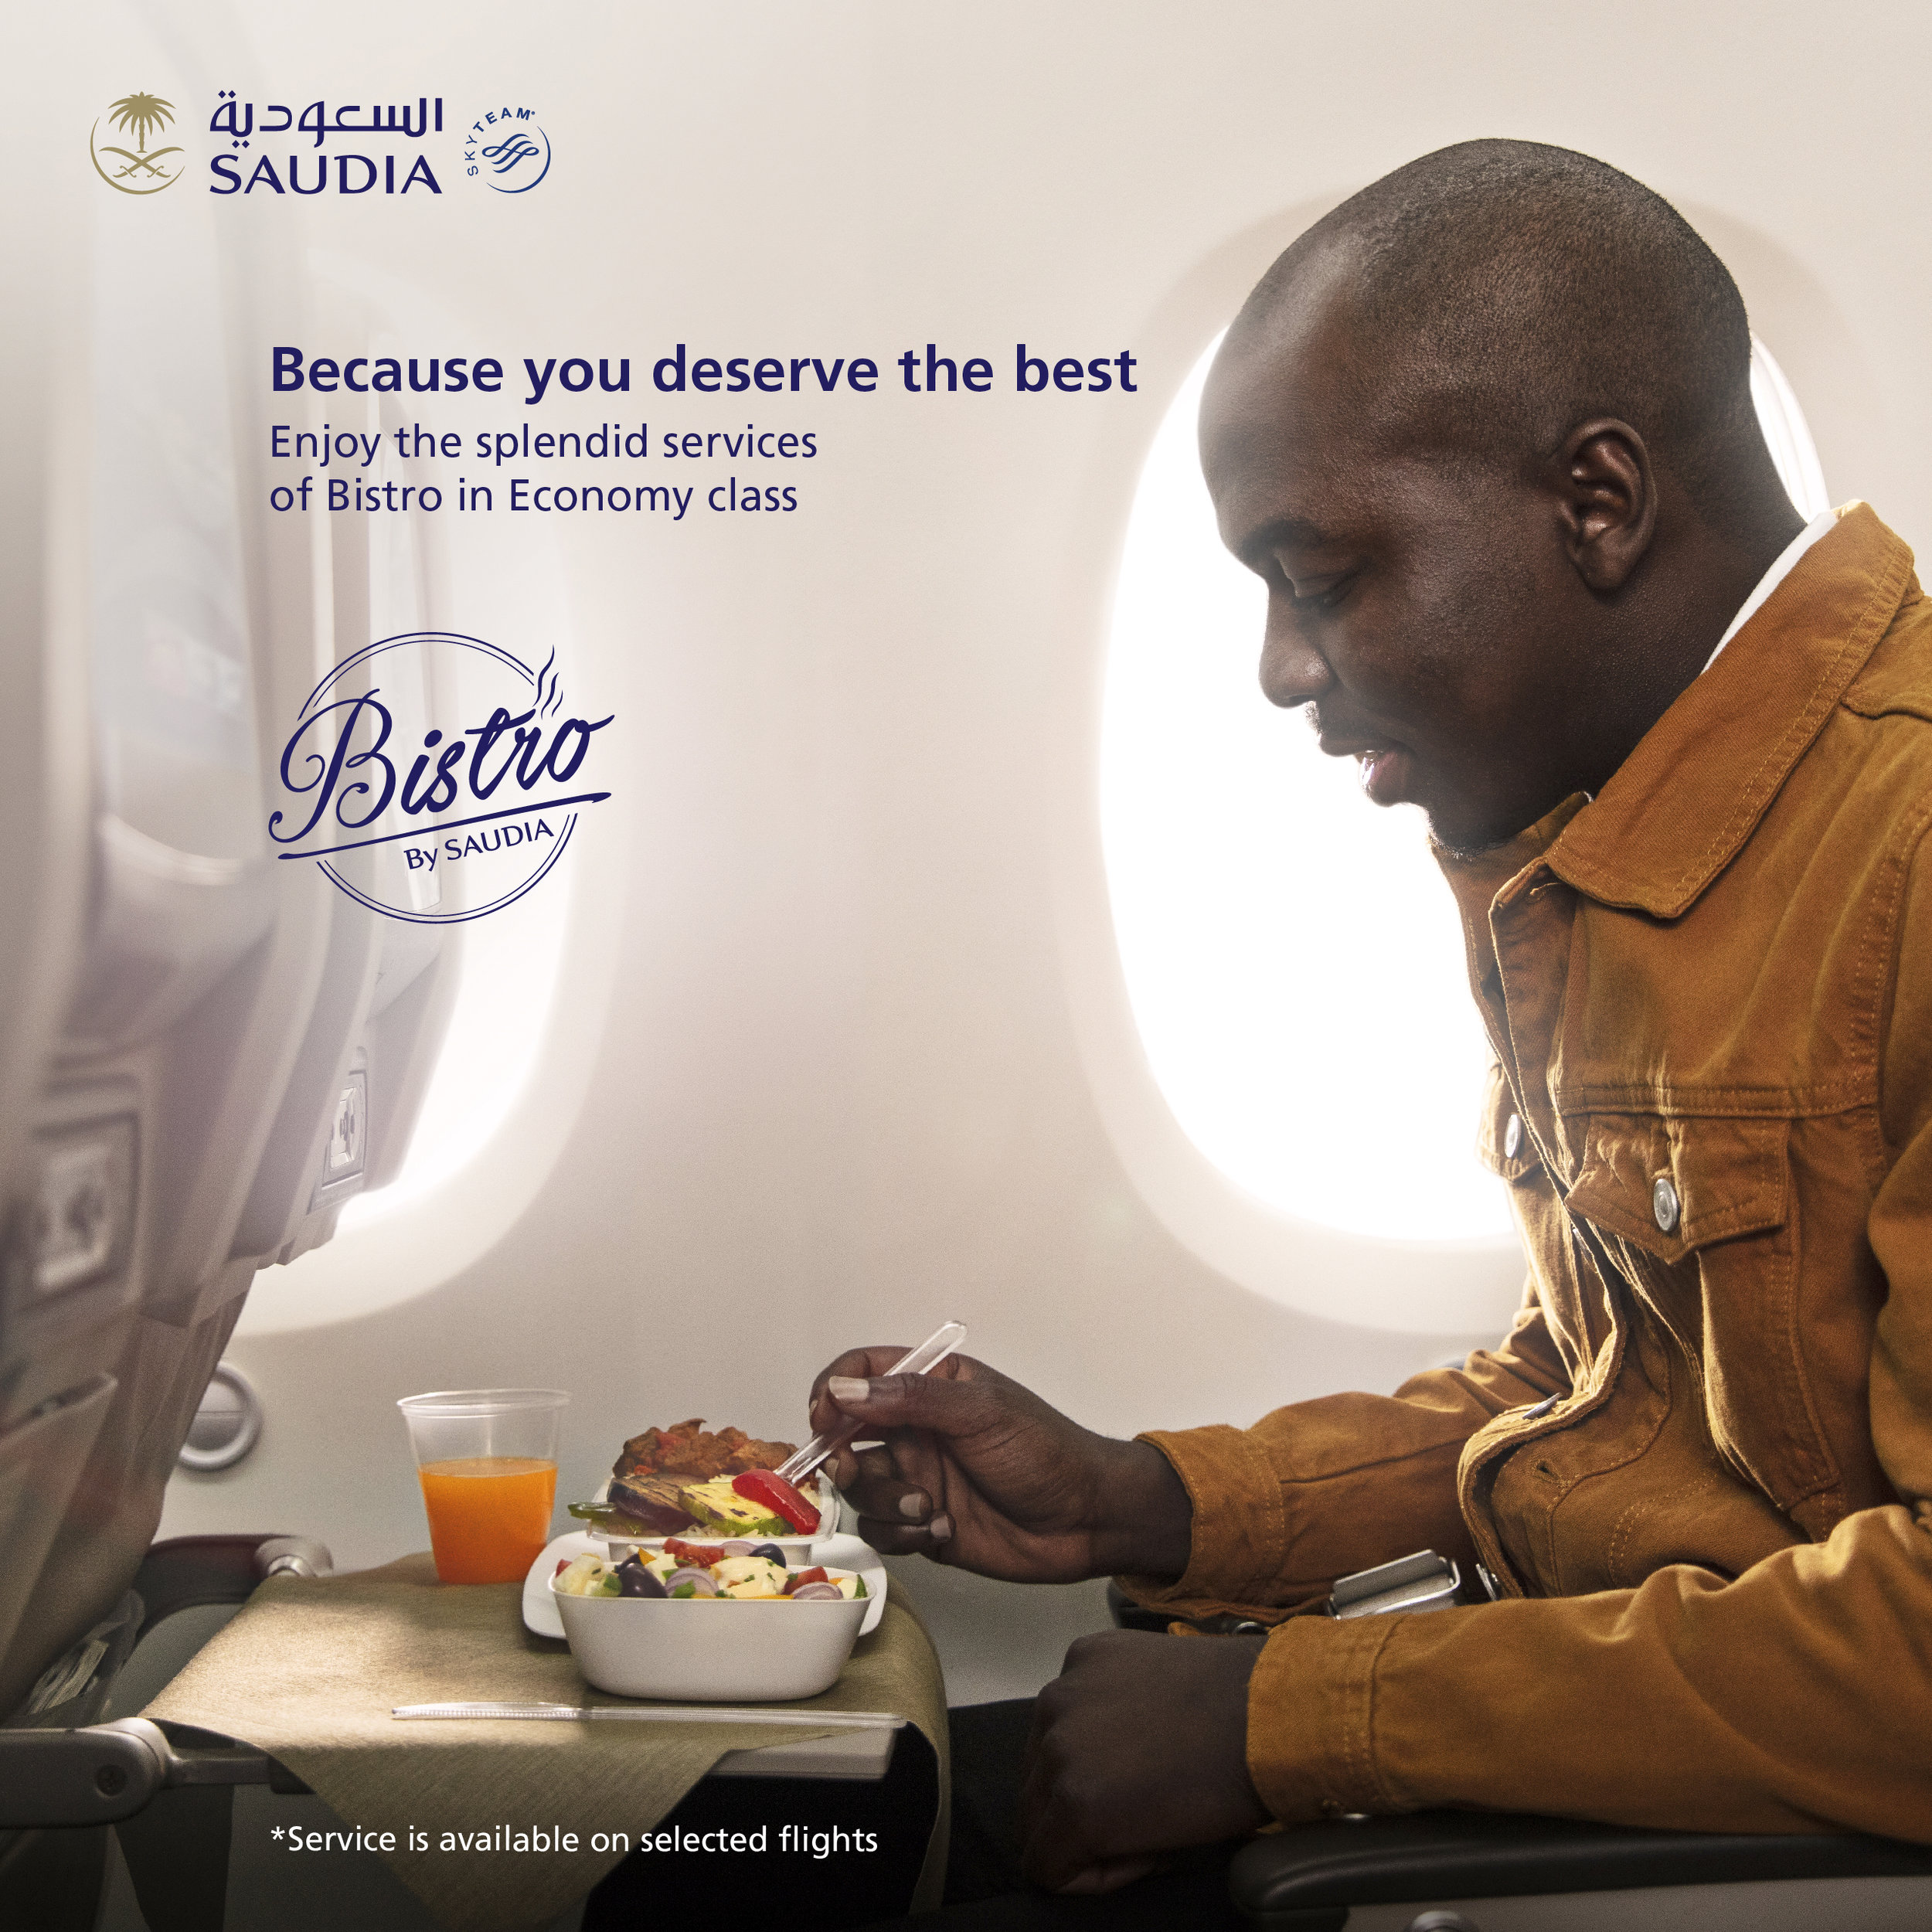 Client - Saudia Airlines | Agency - Focus Ad | Description - OOH 'Bistro' Print Campaign